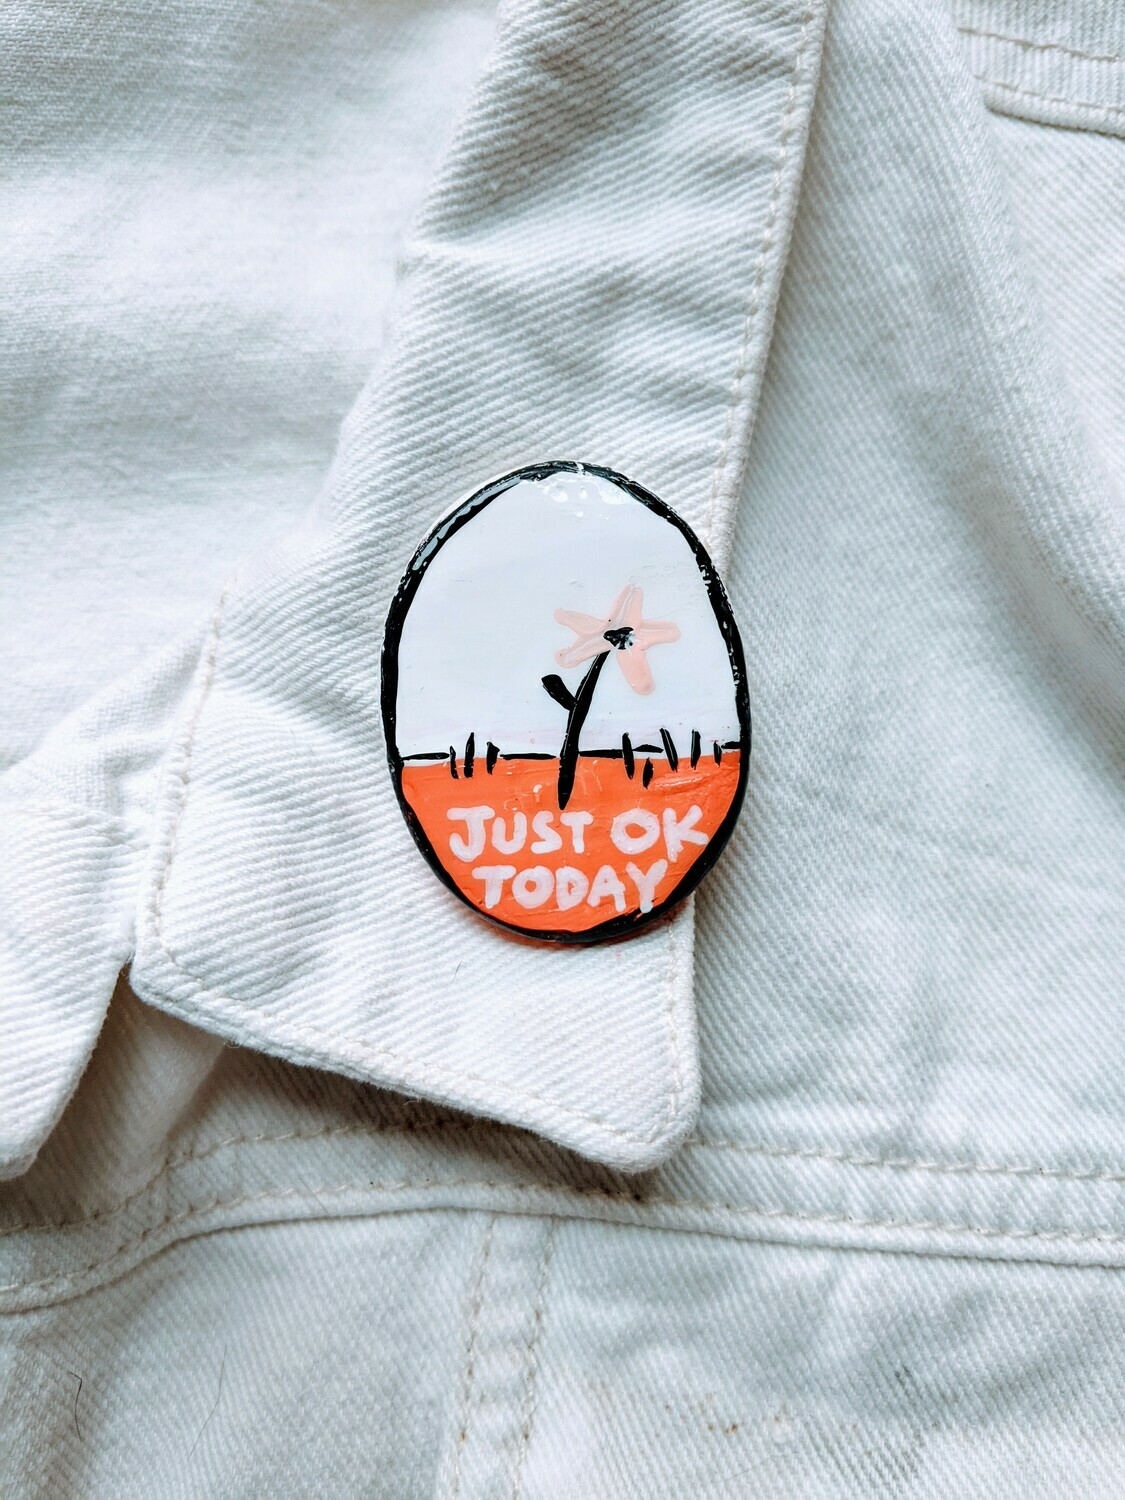 Just Ok Today Pin